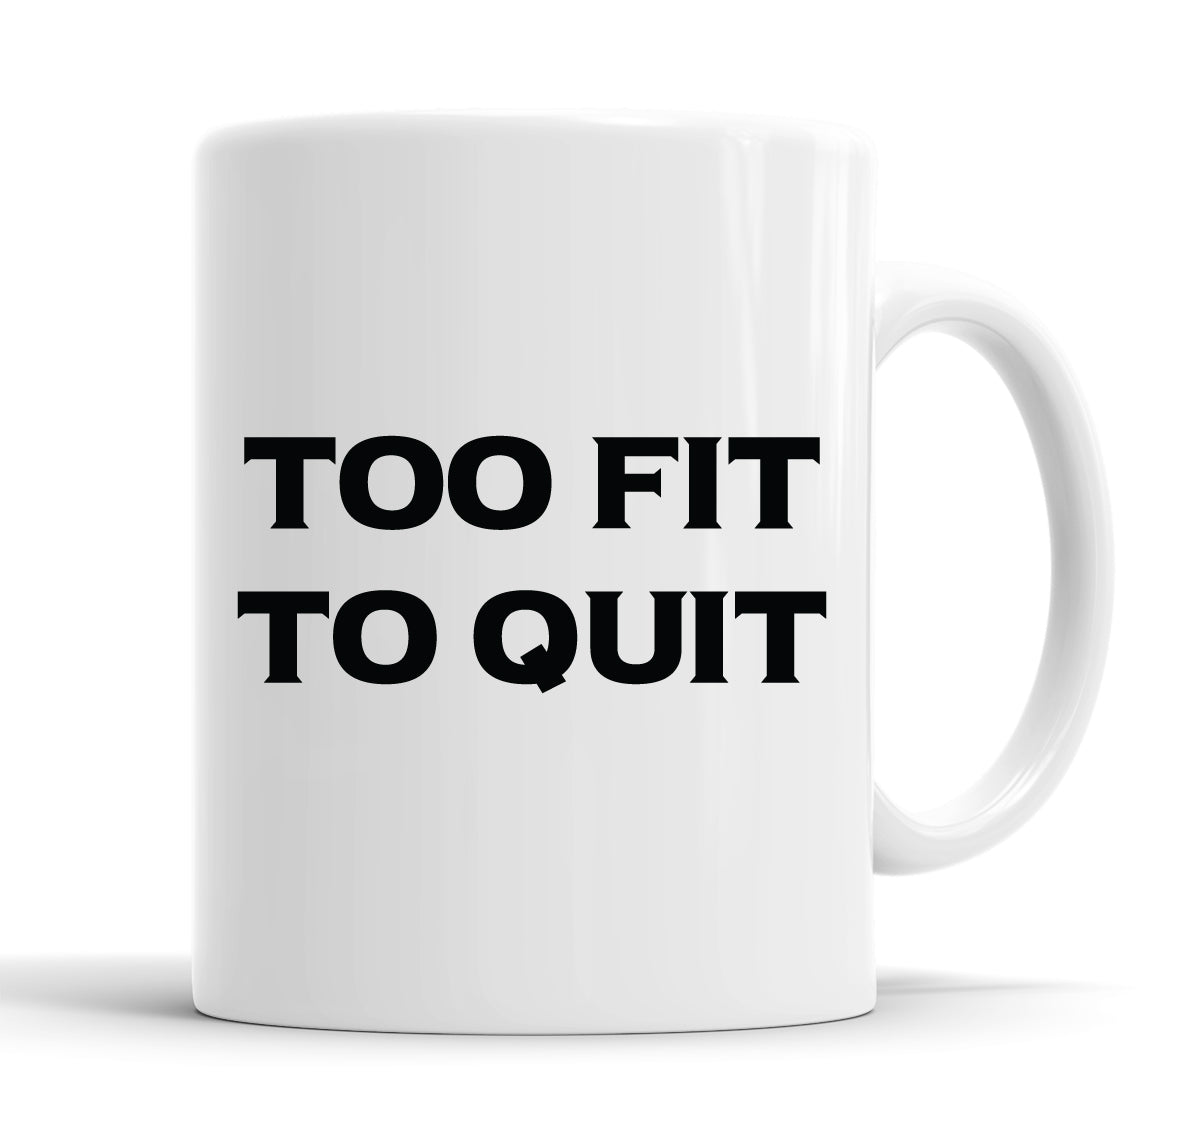 Too Fit To Quit Funny Slogan Mug Tea Cup Coffee